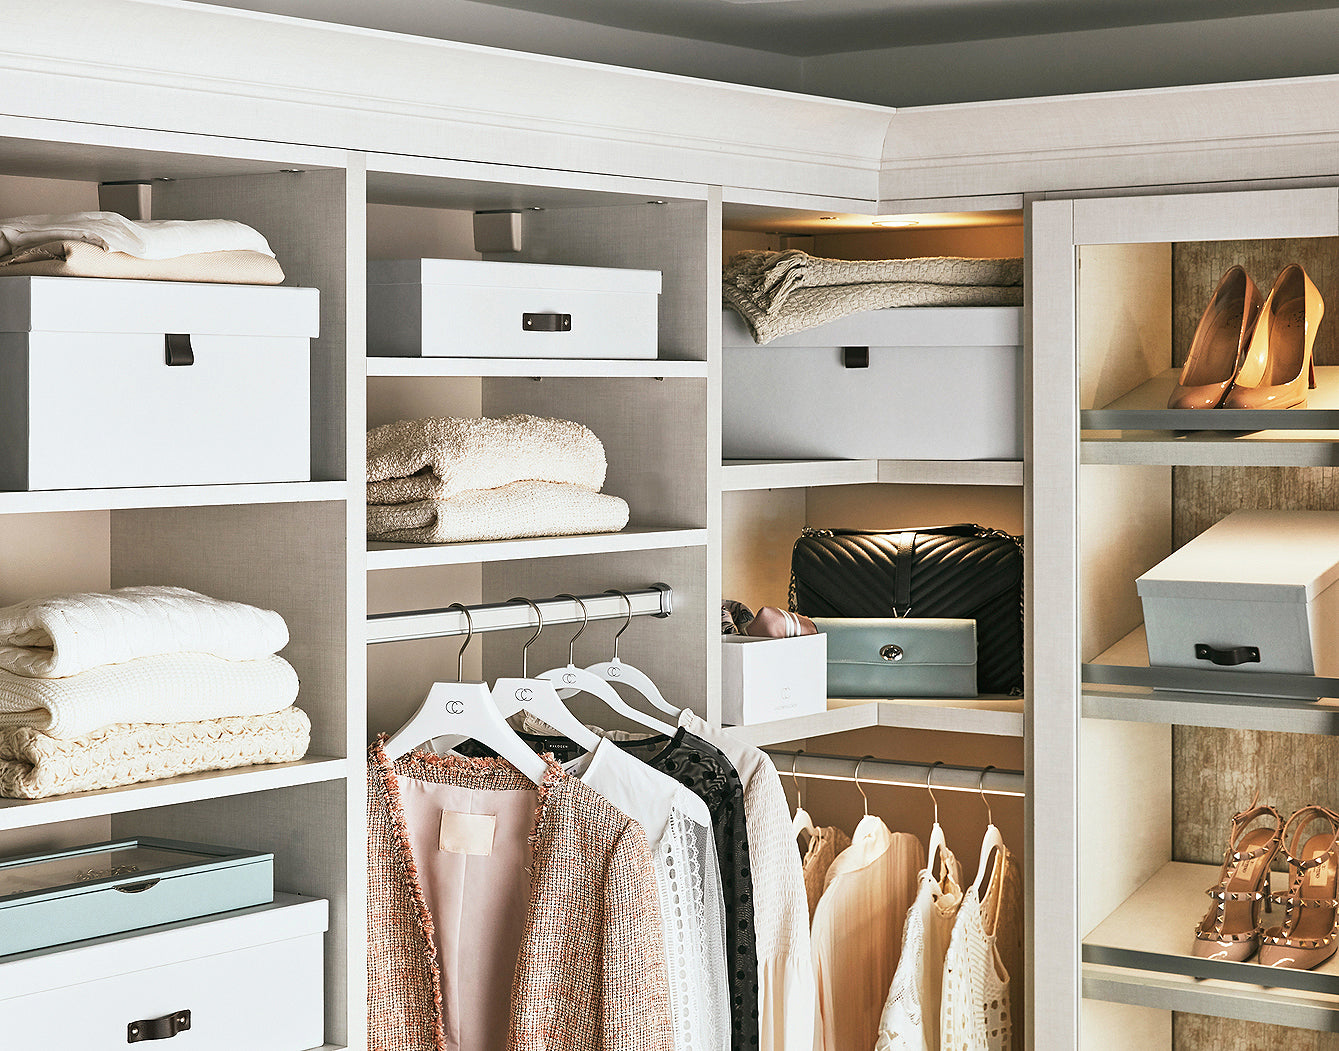 Welcome to your organized Closet